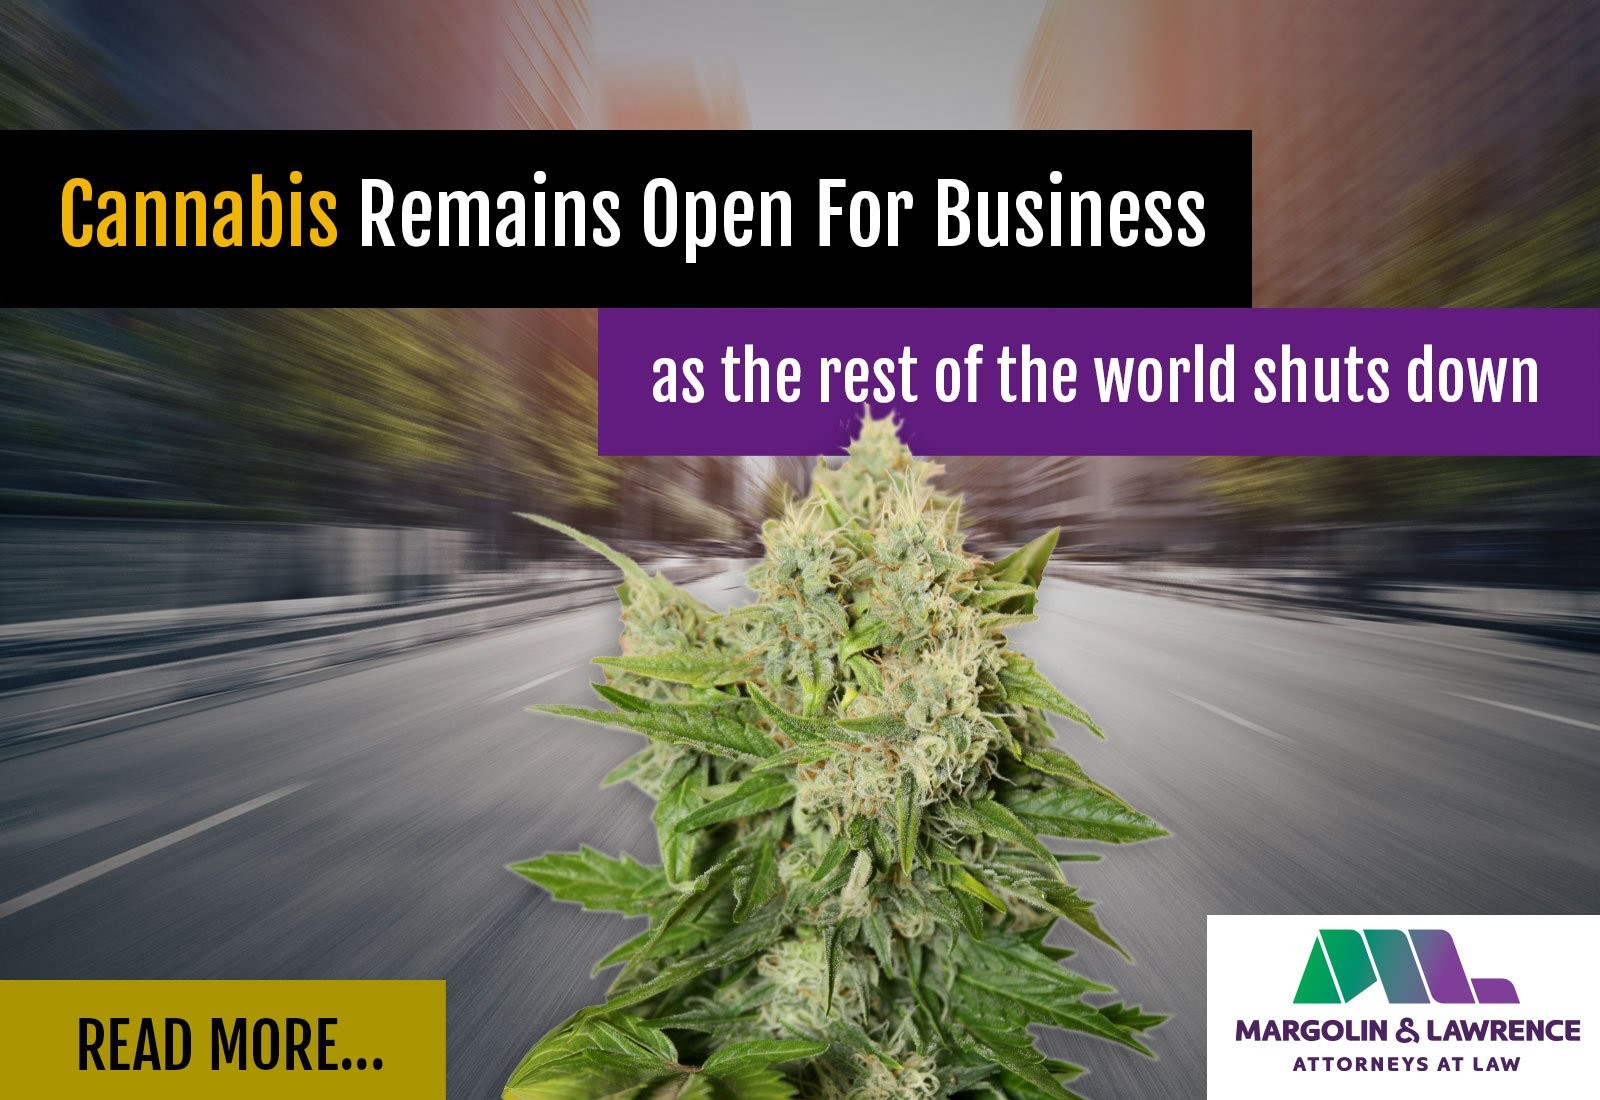 Cannabis Remains Open for Business as the Rest of the World Shuts Down